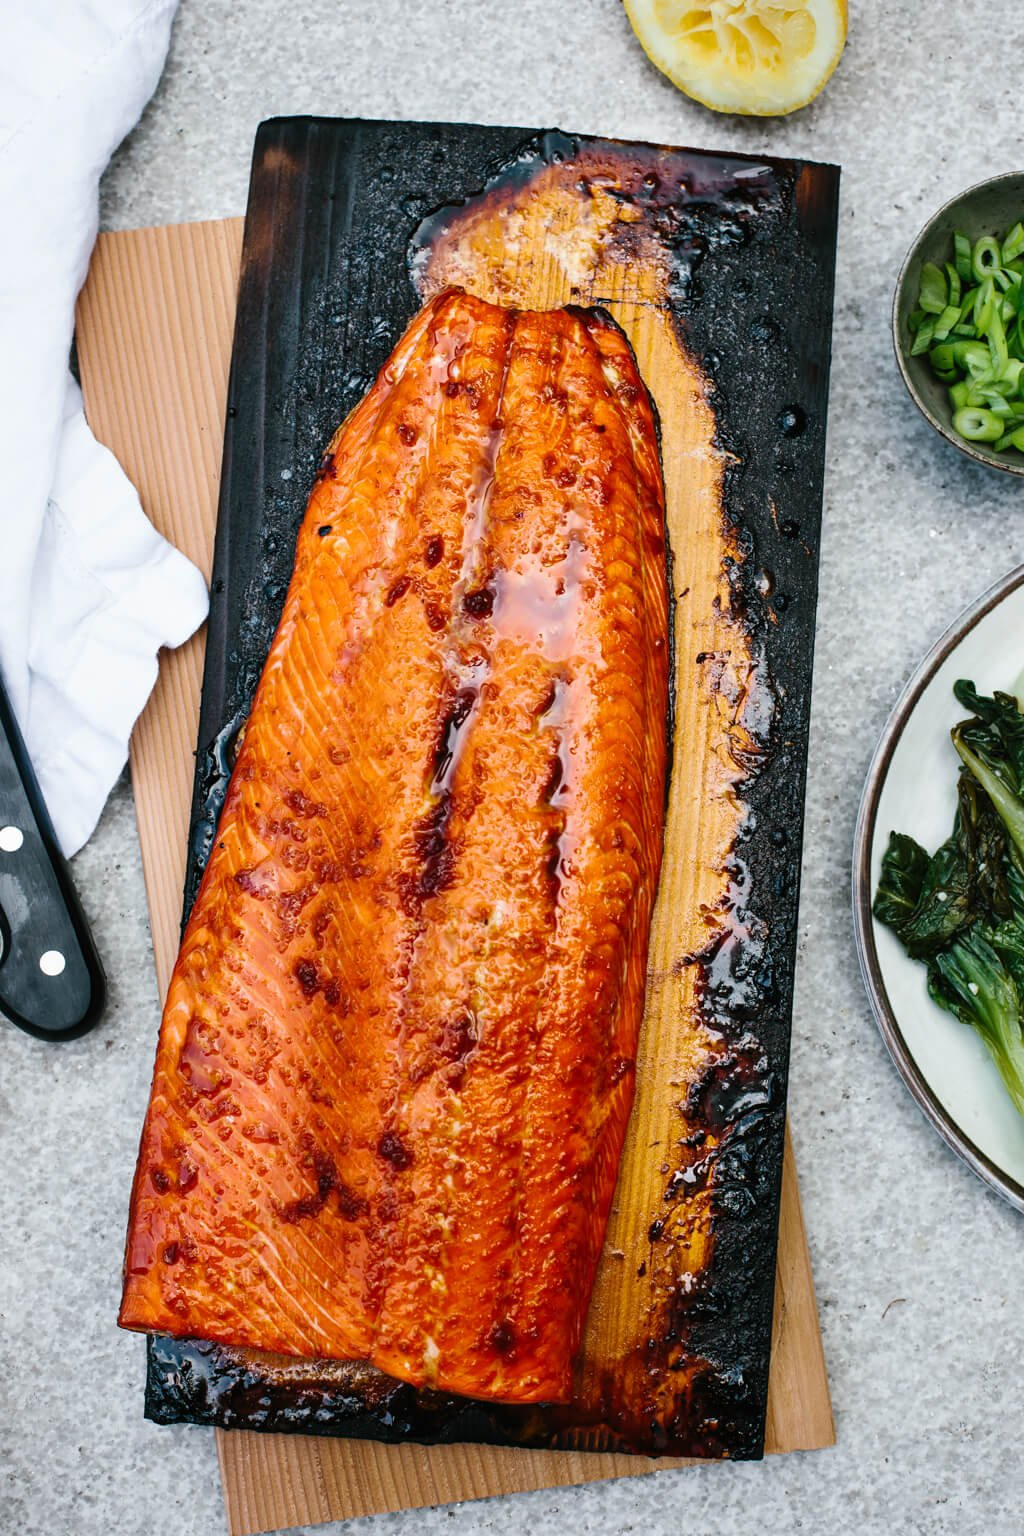 Cedar plank salmon on charred grilling plank next to plate of bok choy.